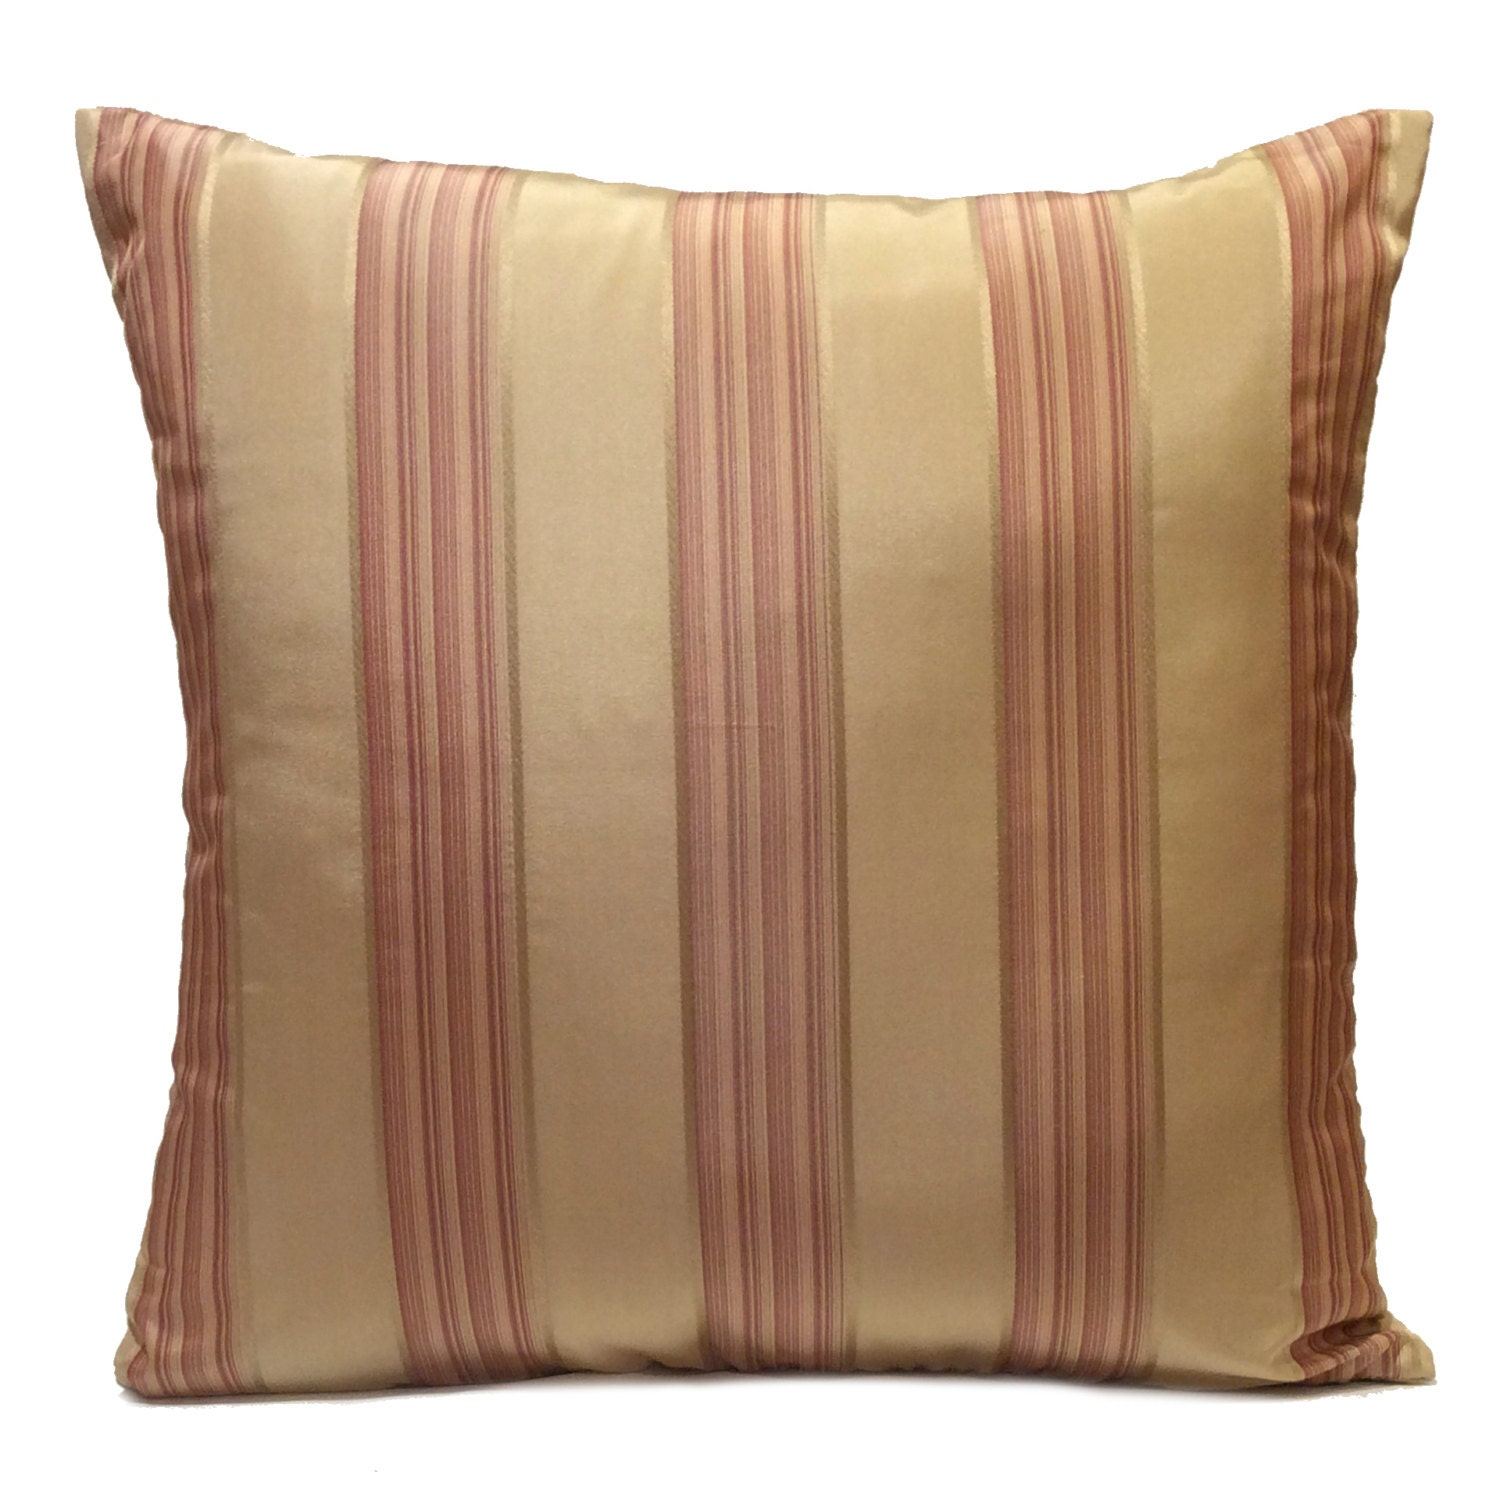 Light tan Beige Pillow Throw Pillow Cover Decorative